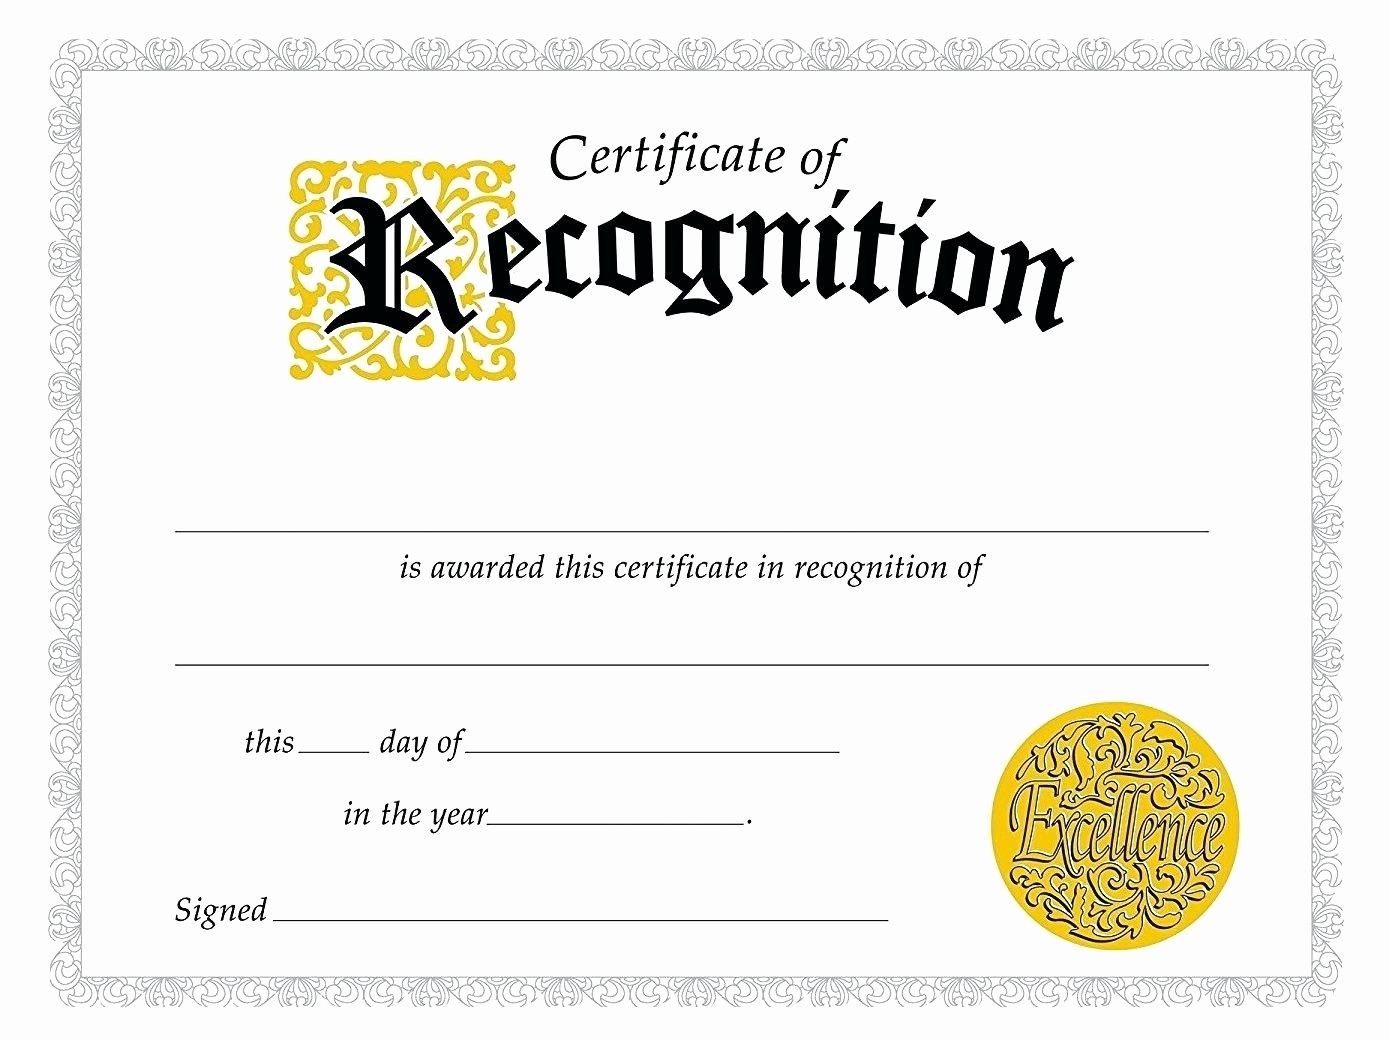 Certificate Of Recognition Editable Template Best Of Template Editable Award Certificate Template